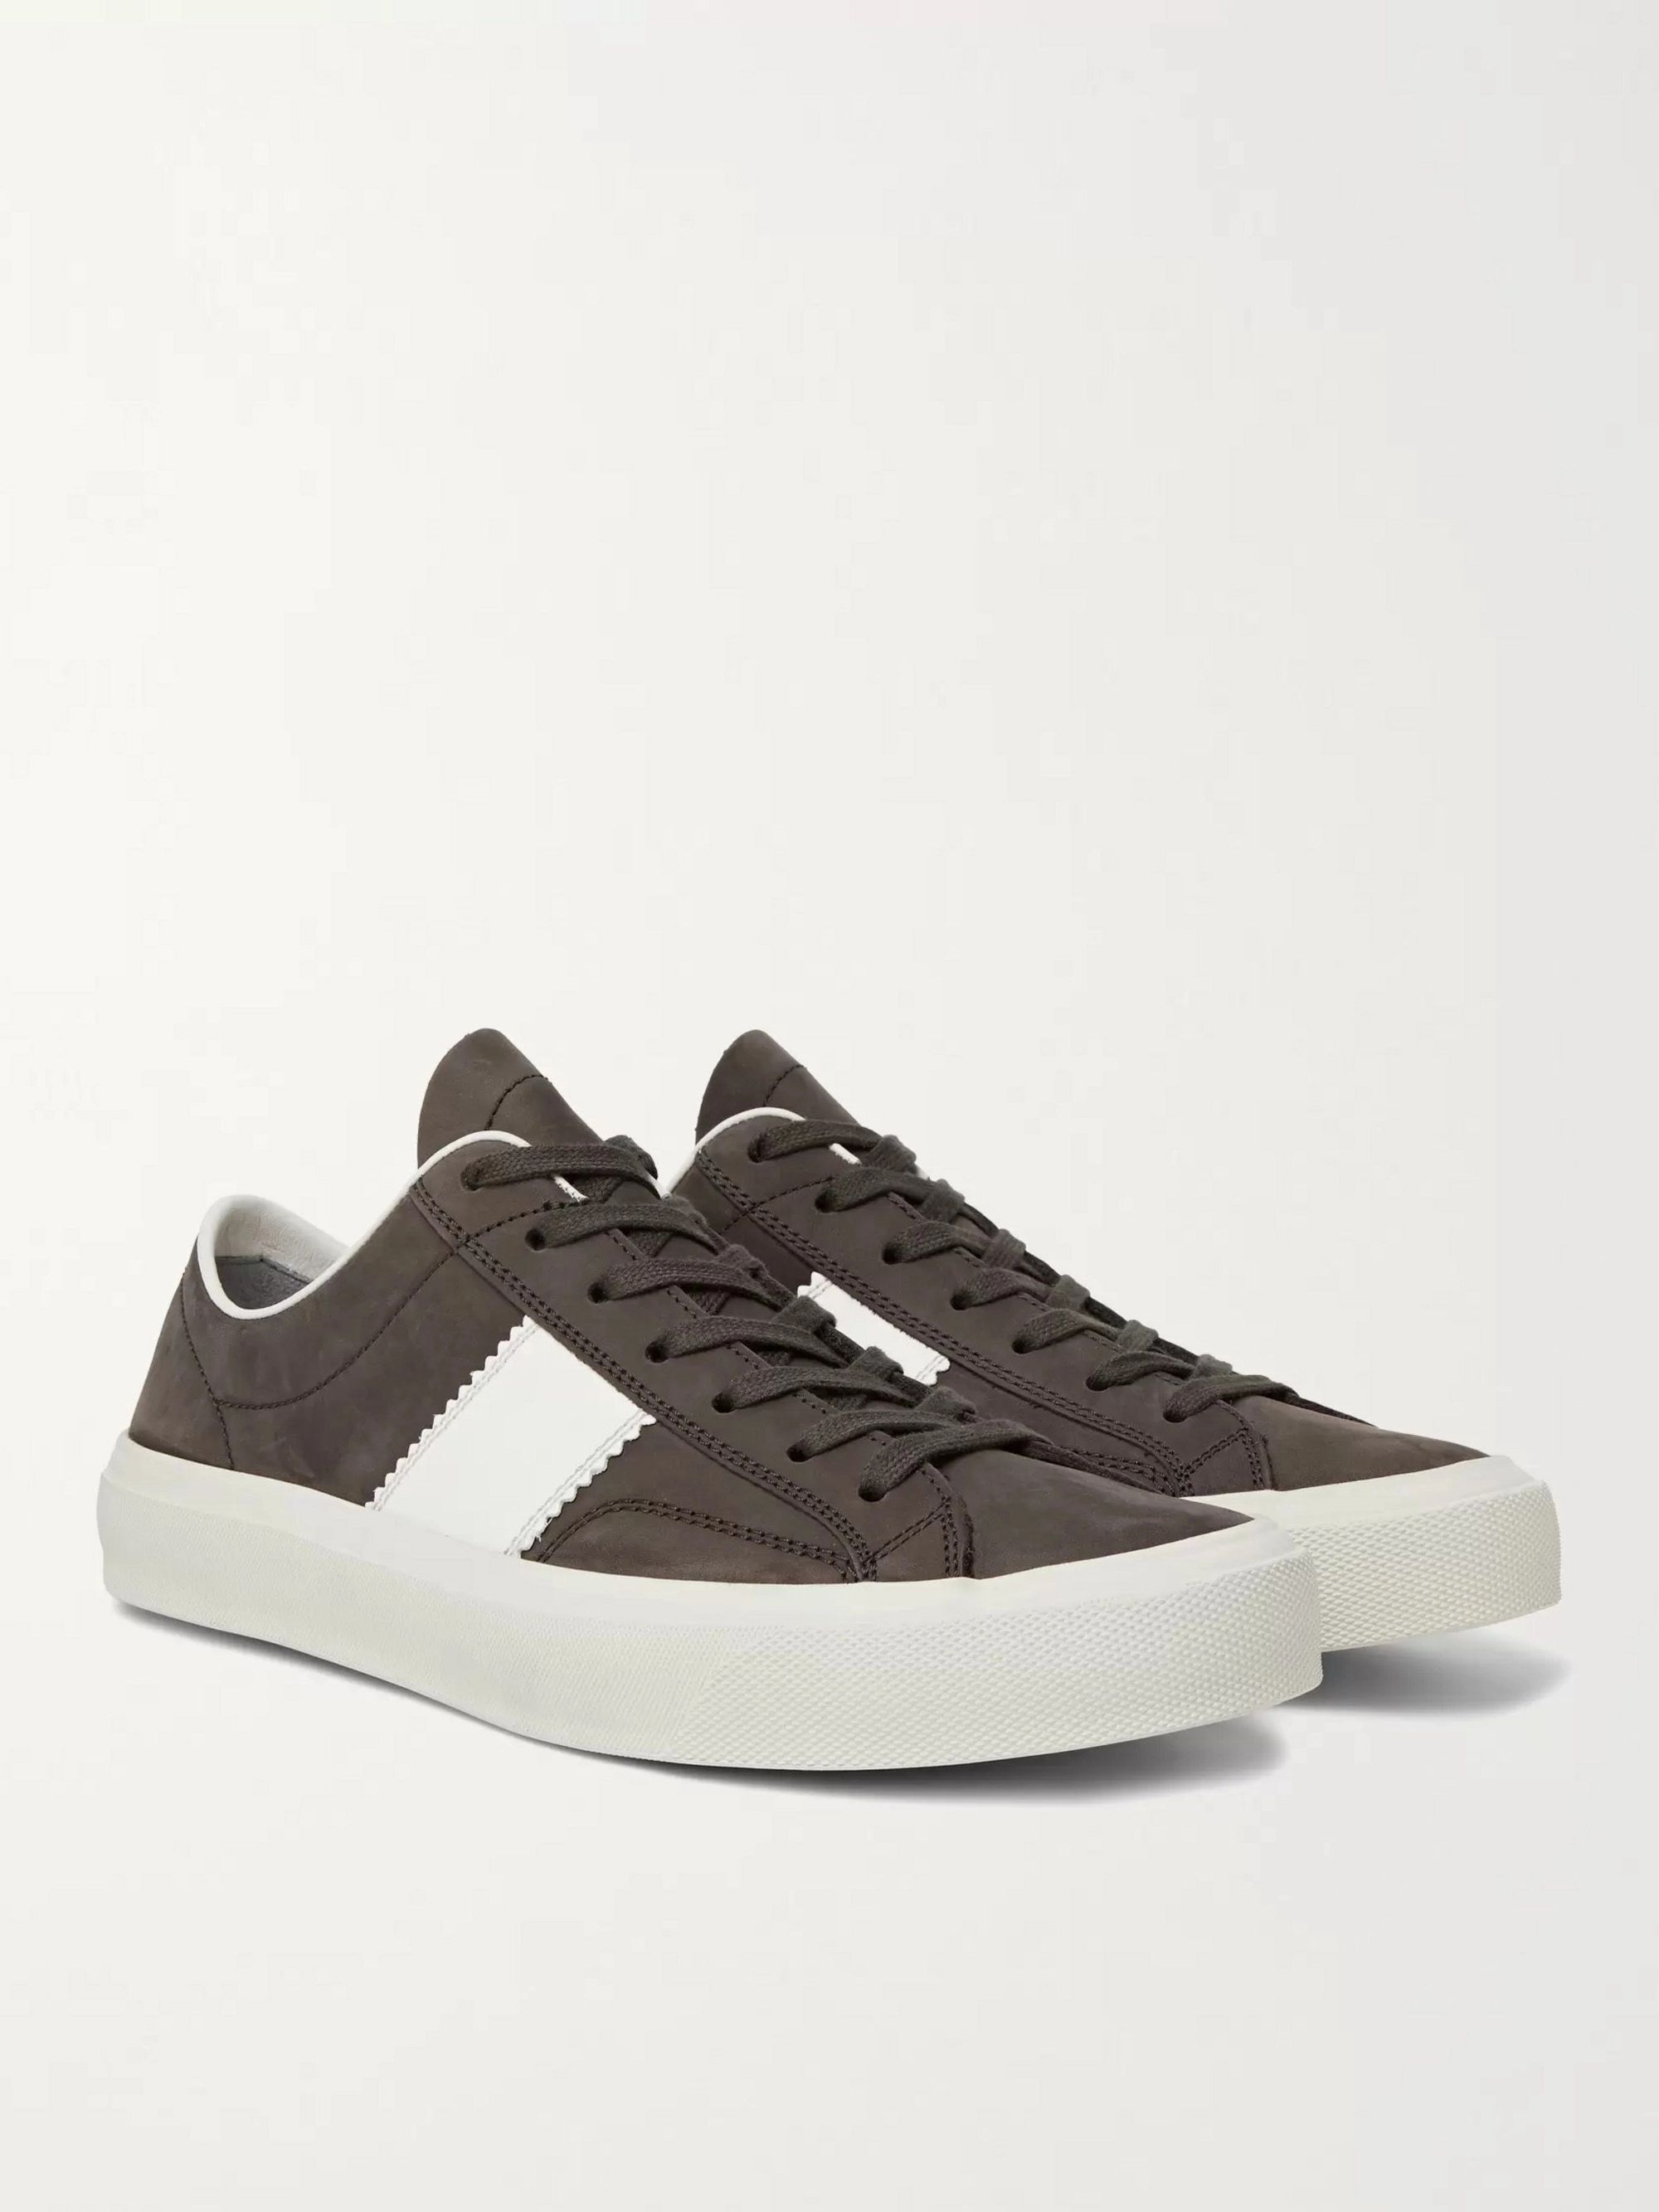 TOM FORD Cambridge Leather-Trimmed Nubuck Sneakers